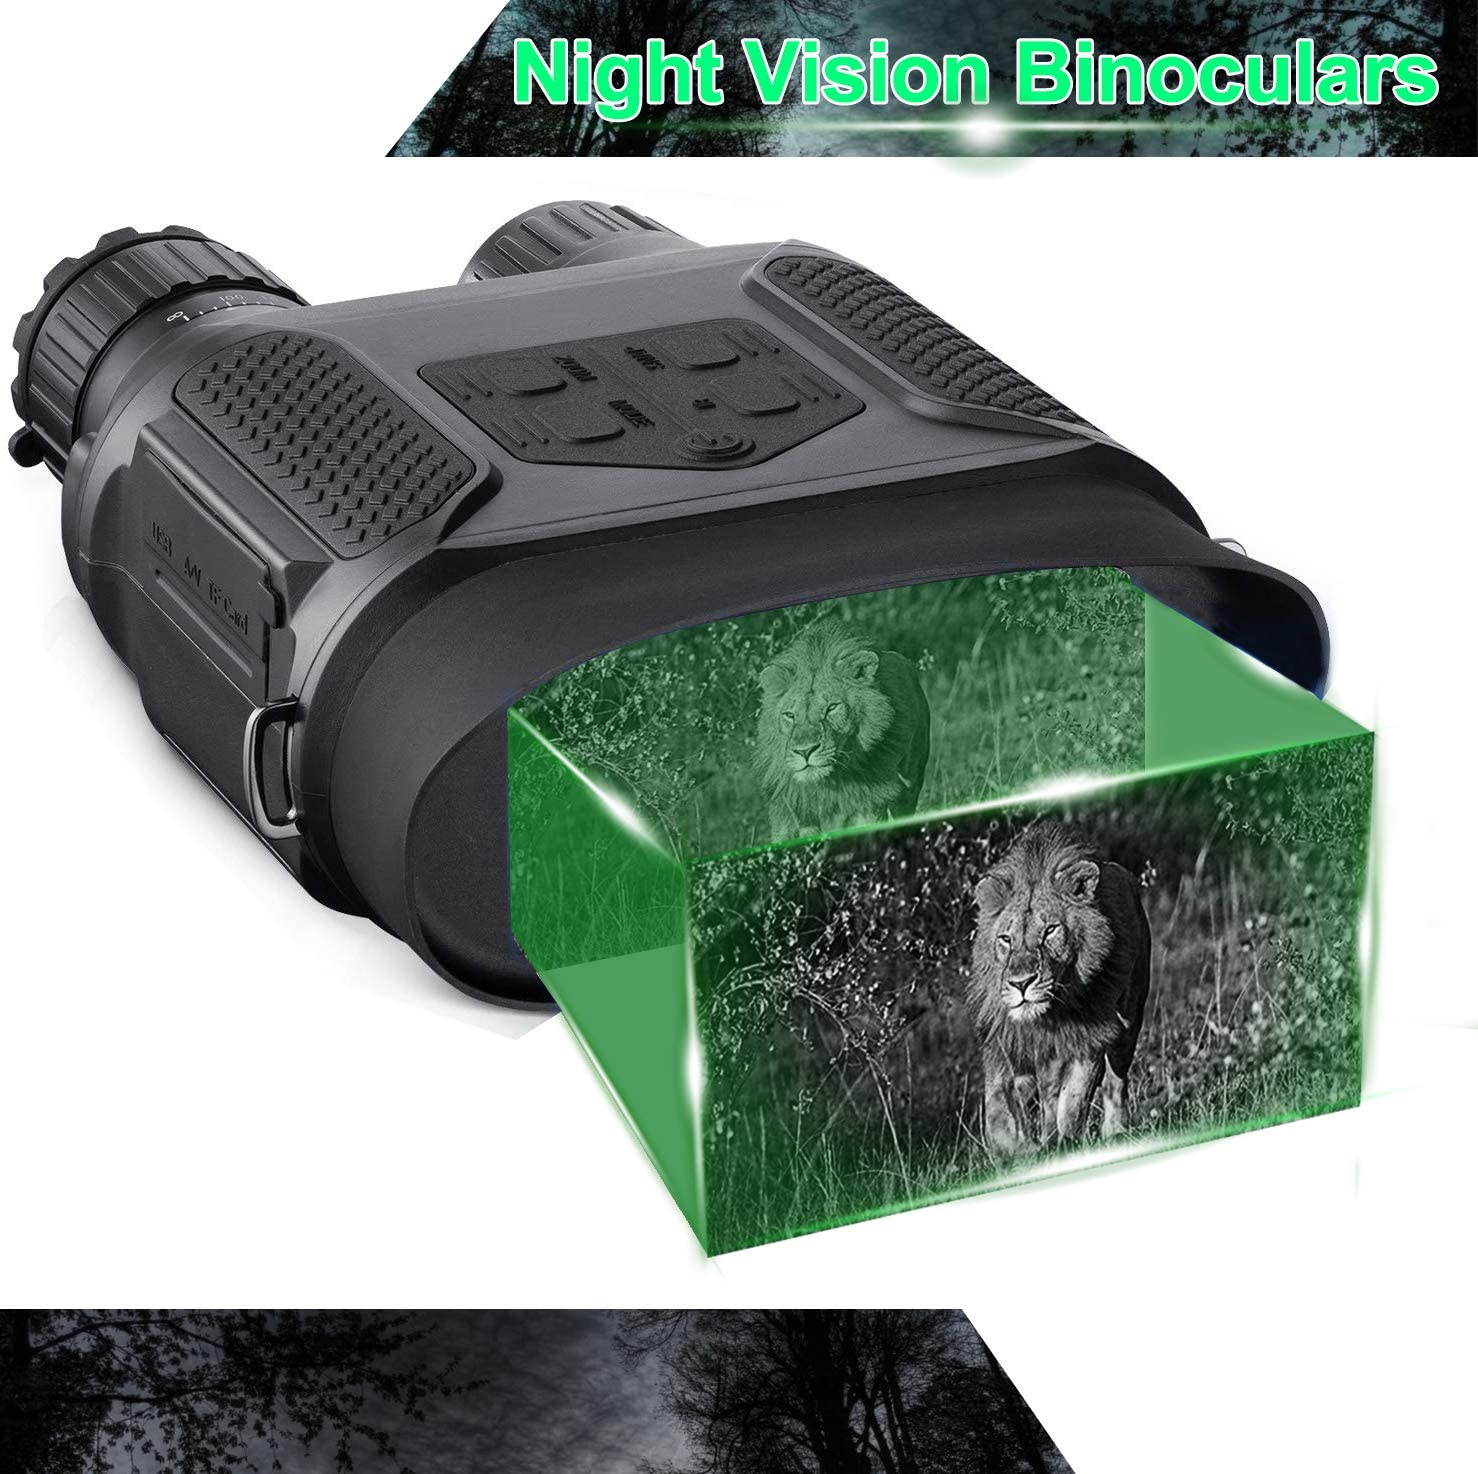 Night Vision Binoculars in Full Darkness – Save Photos Videos with Audio – 7x31mm Infrared Spy Gear for Hunting Surveillance – 4 Large Screen 1300ft Viewing Range